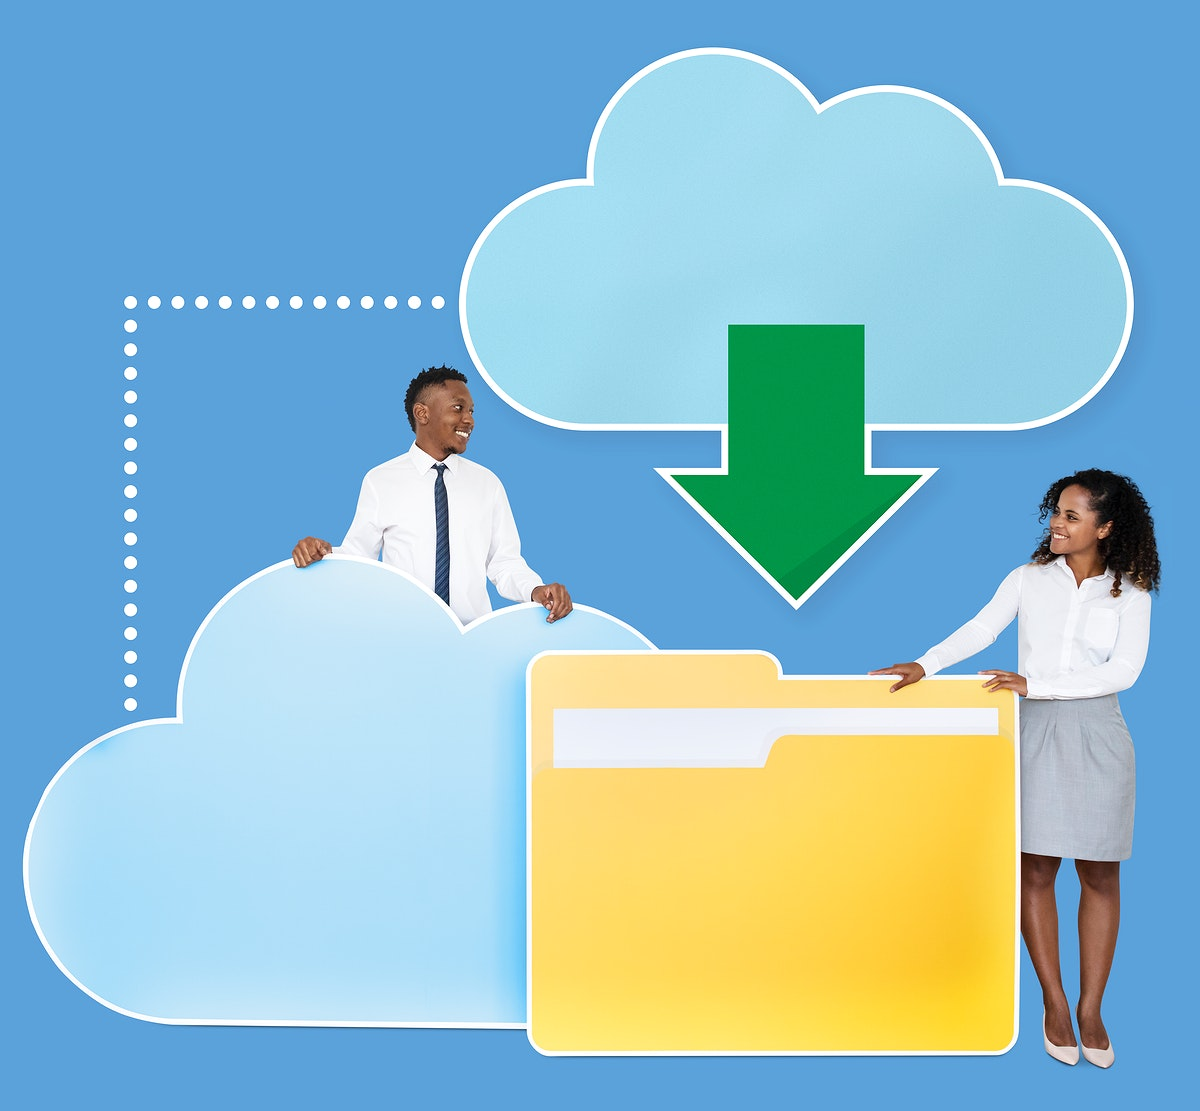 Business people downloading data from a cloud icon